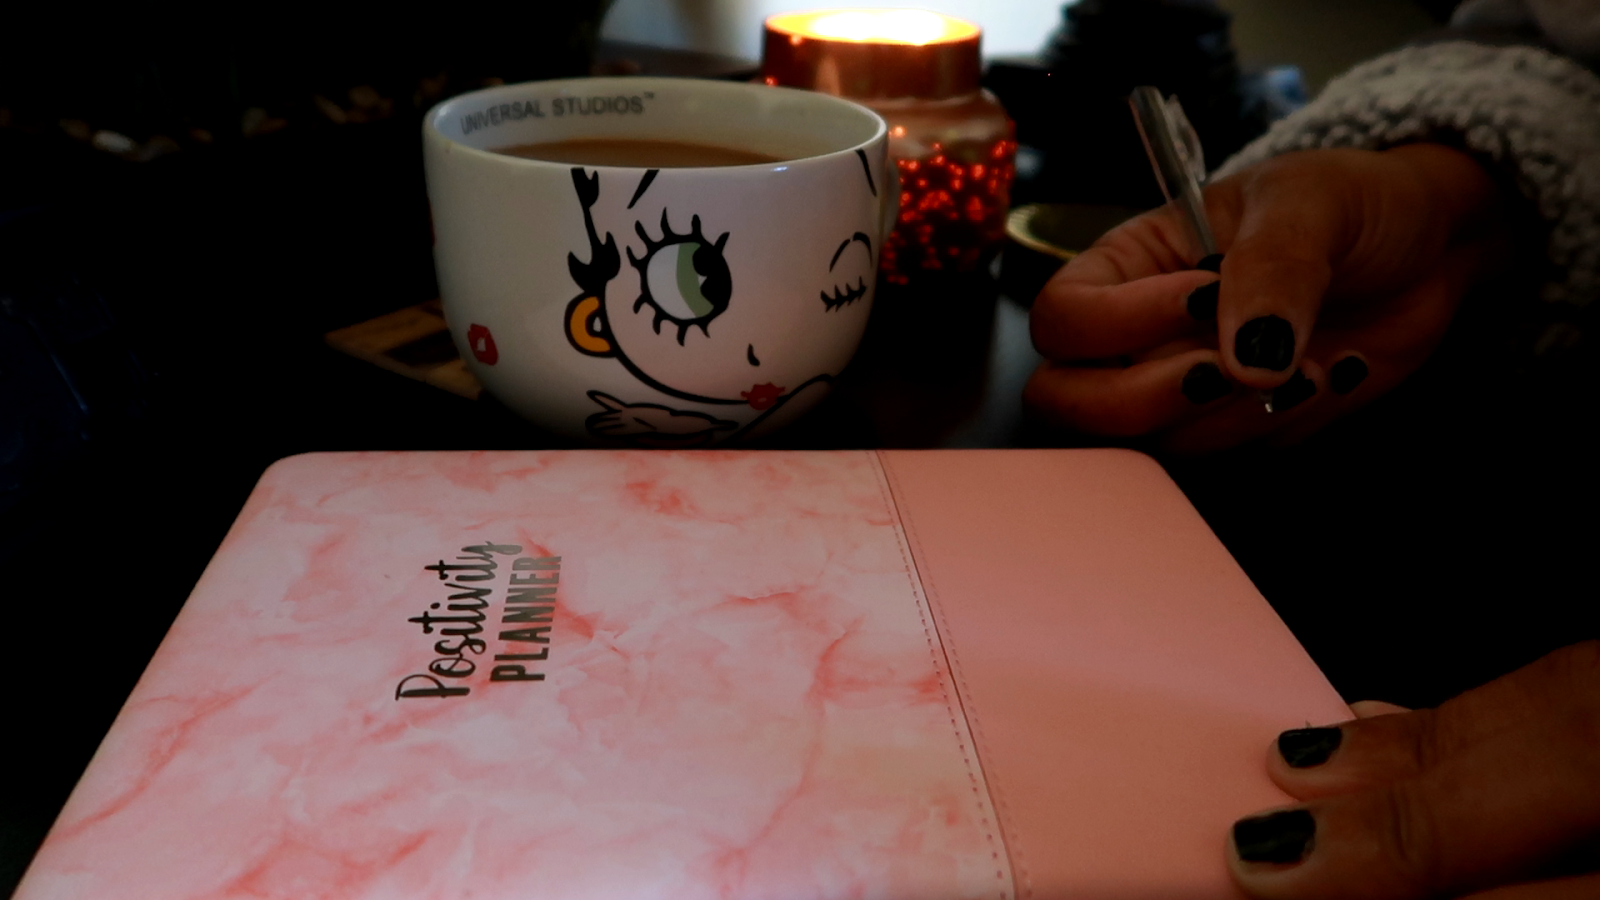 Image: Tangie Bell is writing in her journal. Drinking coffee out of her Betty Boop cup. Sharing on her blog her story about being in midlife crisis. Seen first on Bits and Babbles blog